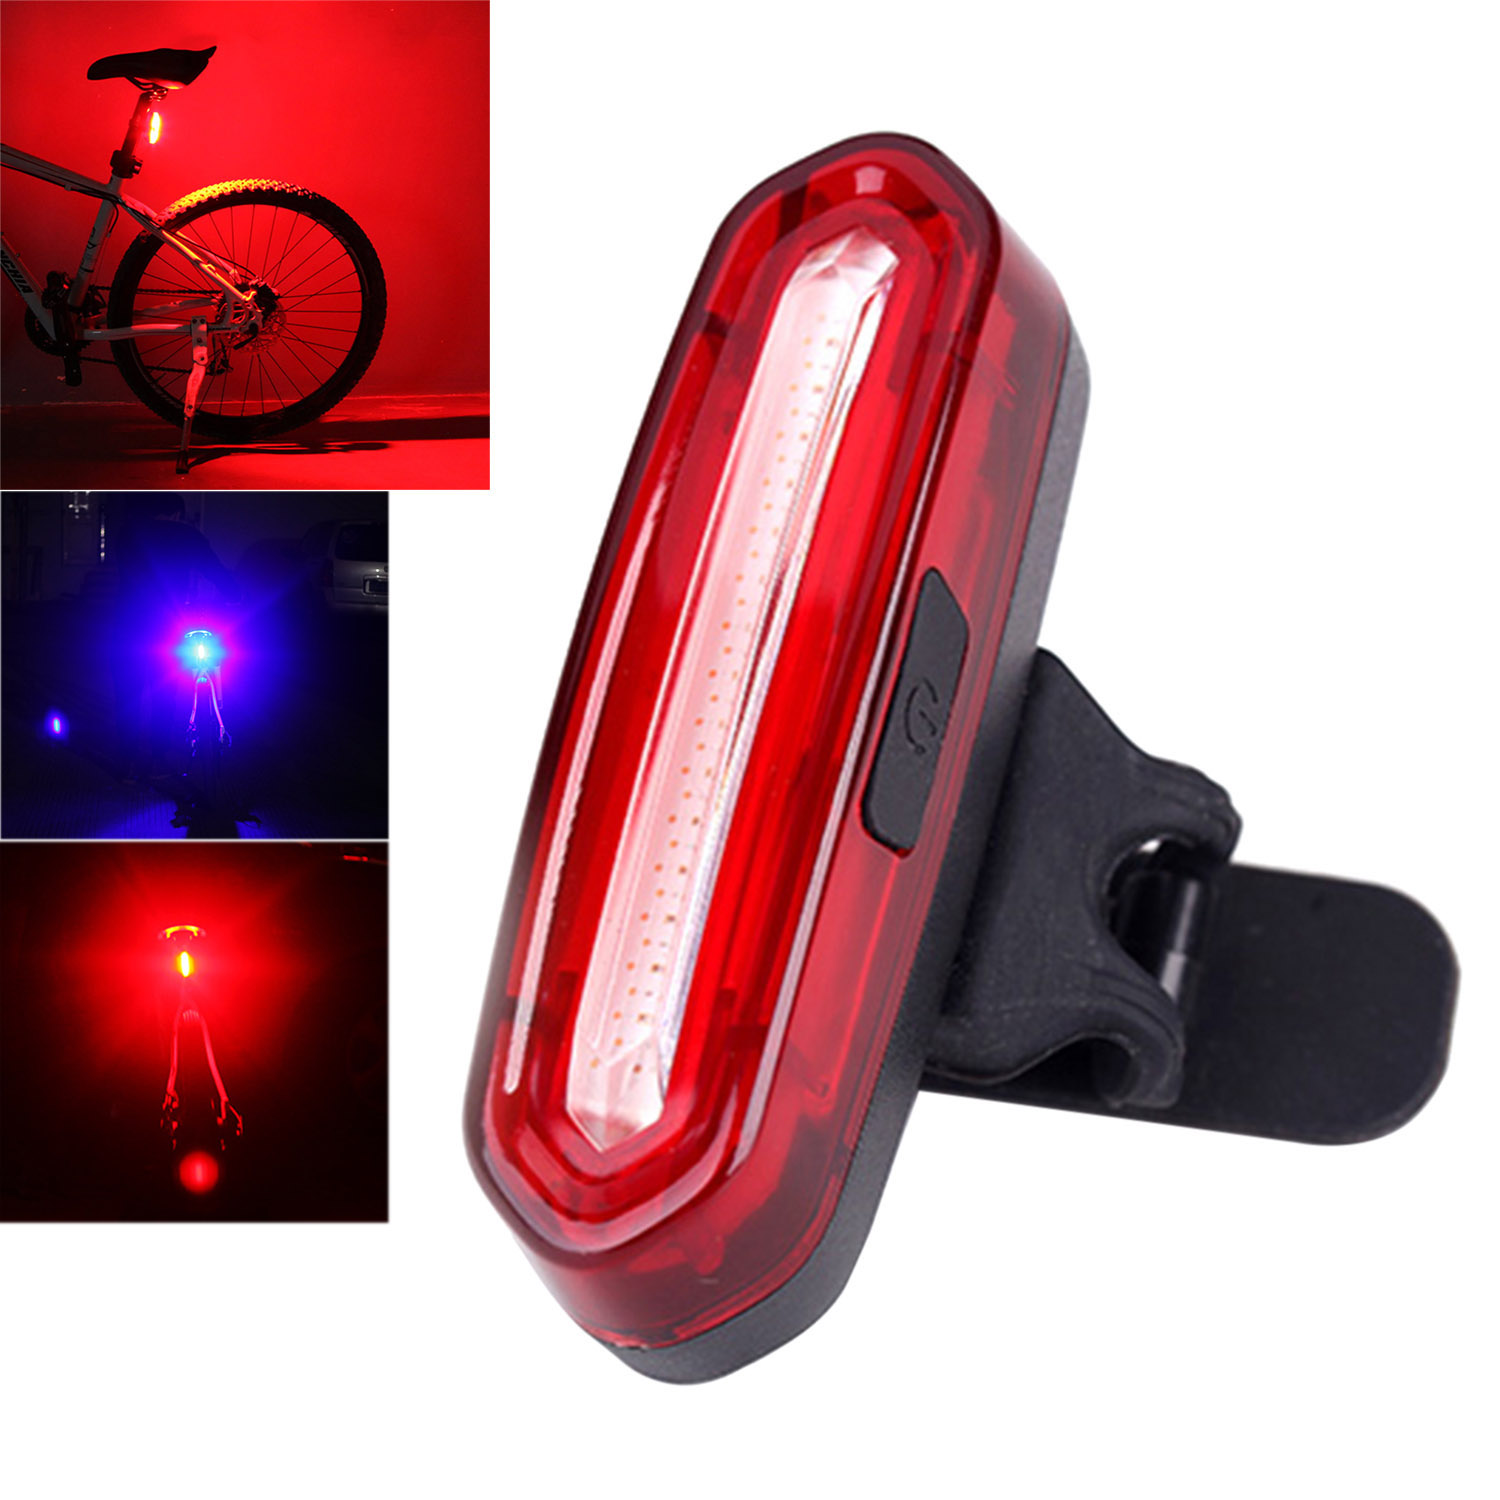 6 Modes Bicycle USB Rechargeable LED Bike Cycling Front Rear Tail Light Lamp Set